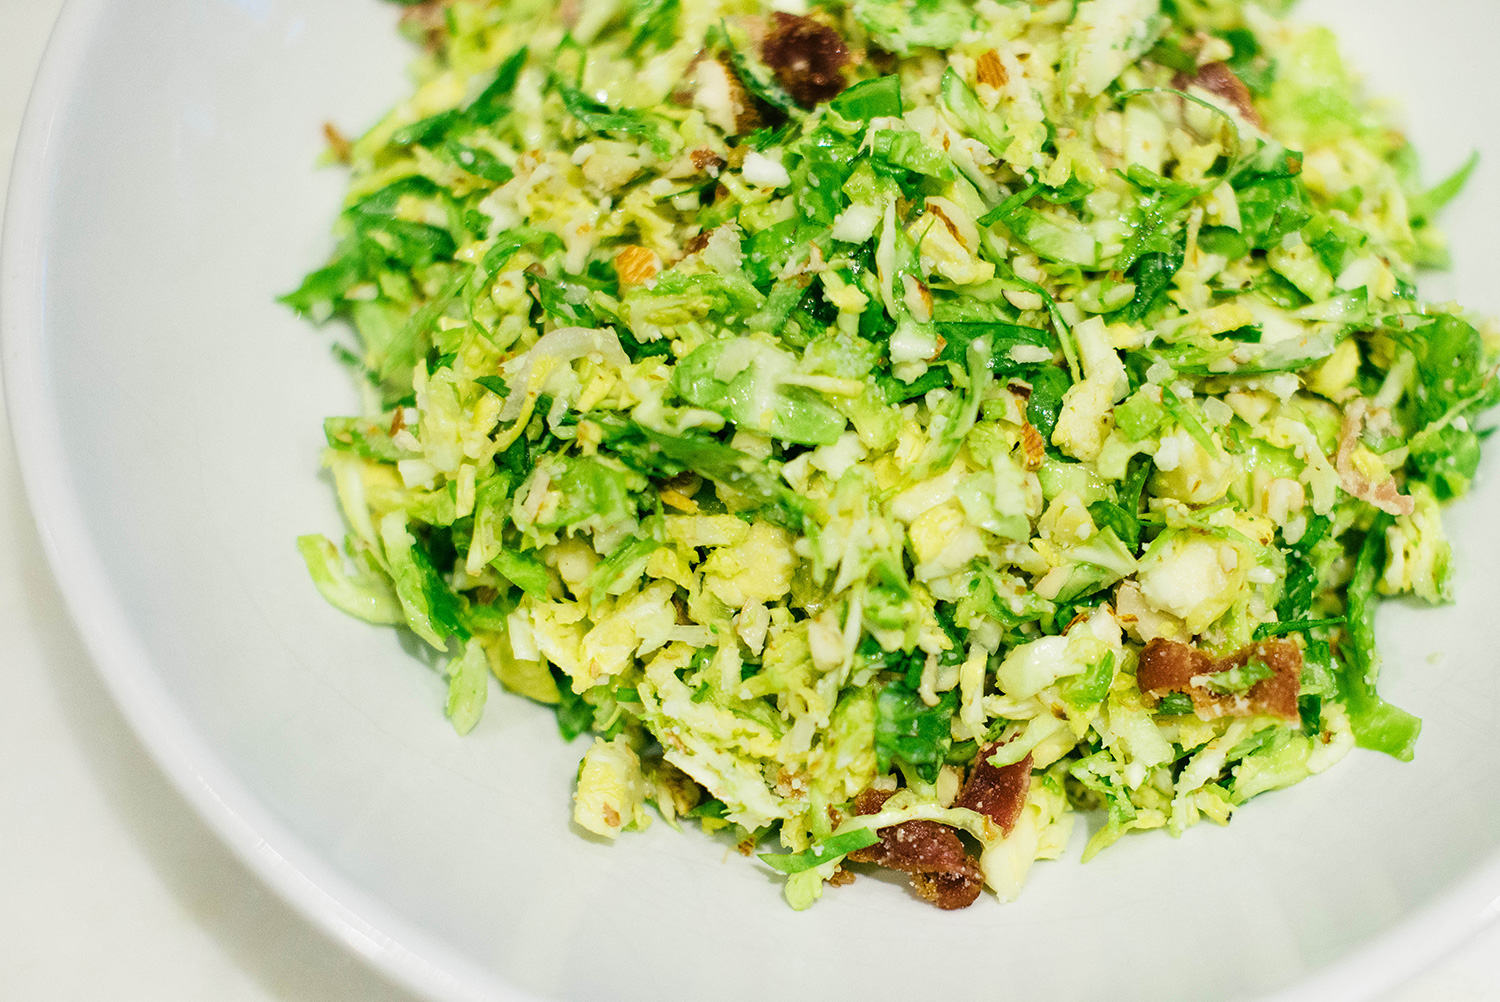 shredded brussels sprouts salad with bacon